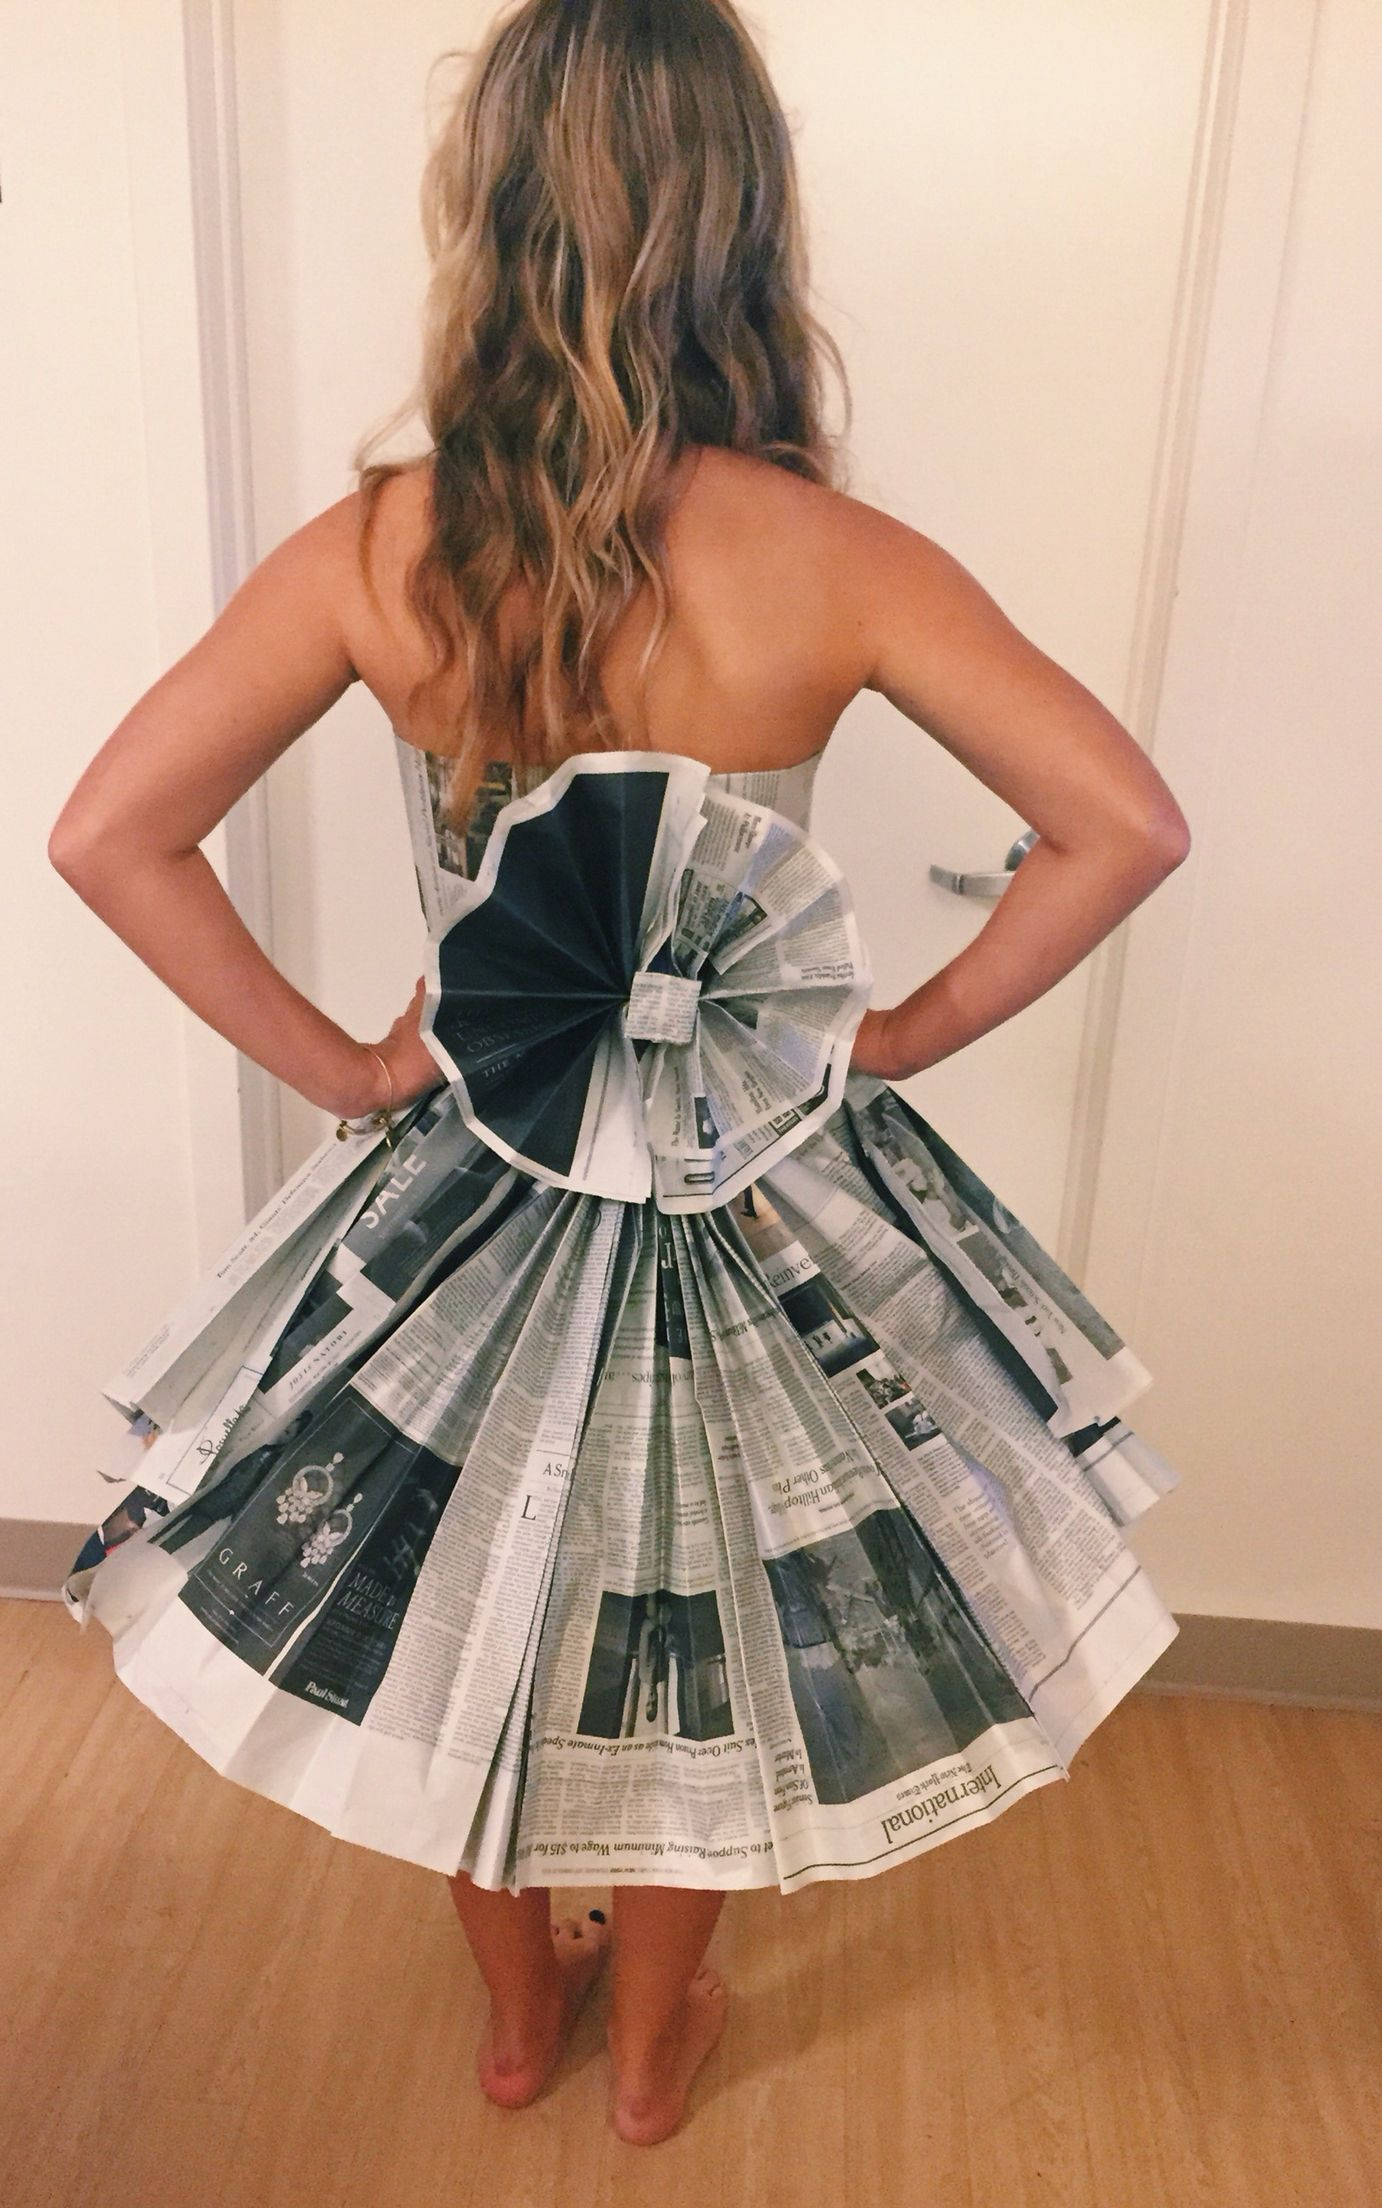 Calmly Newspaper Abc Diy Black Girls Abc Party Ideas Men Abc Diy Black Newspaper Costumes Abc Party Ideas ideas Abc Party Ideas